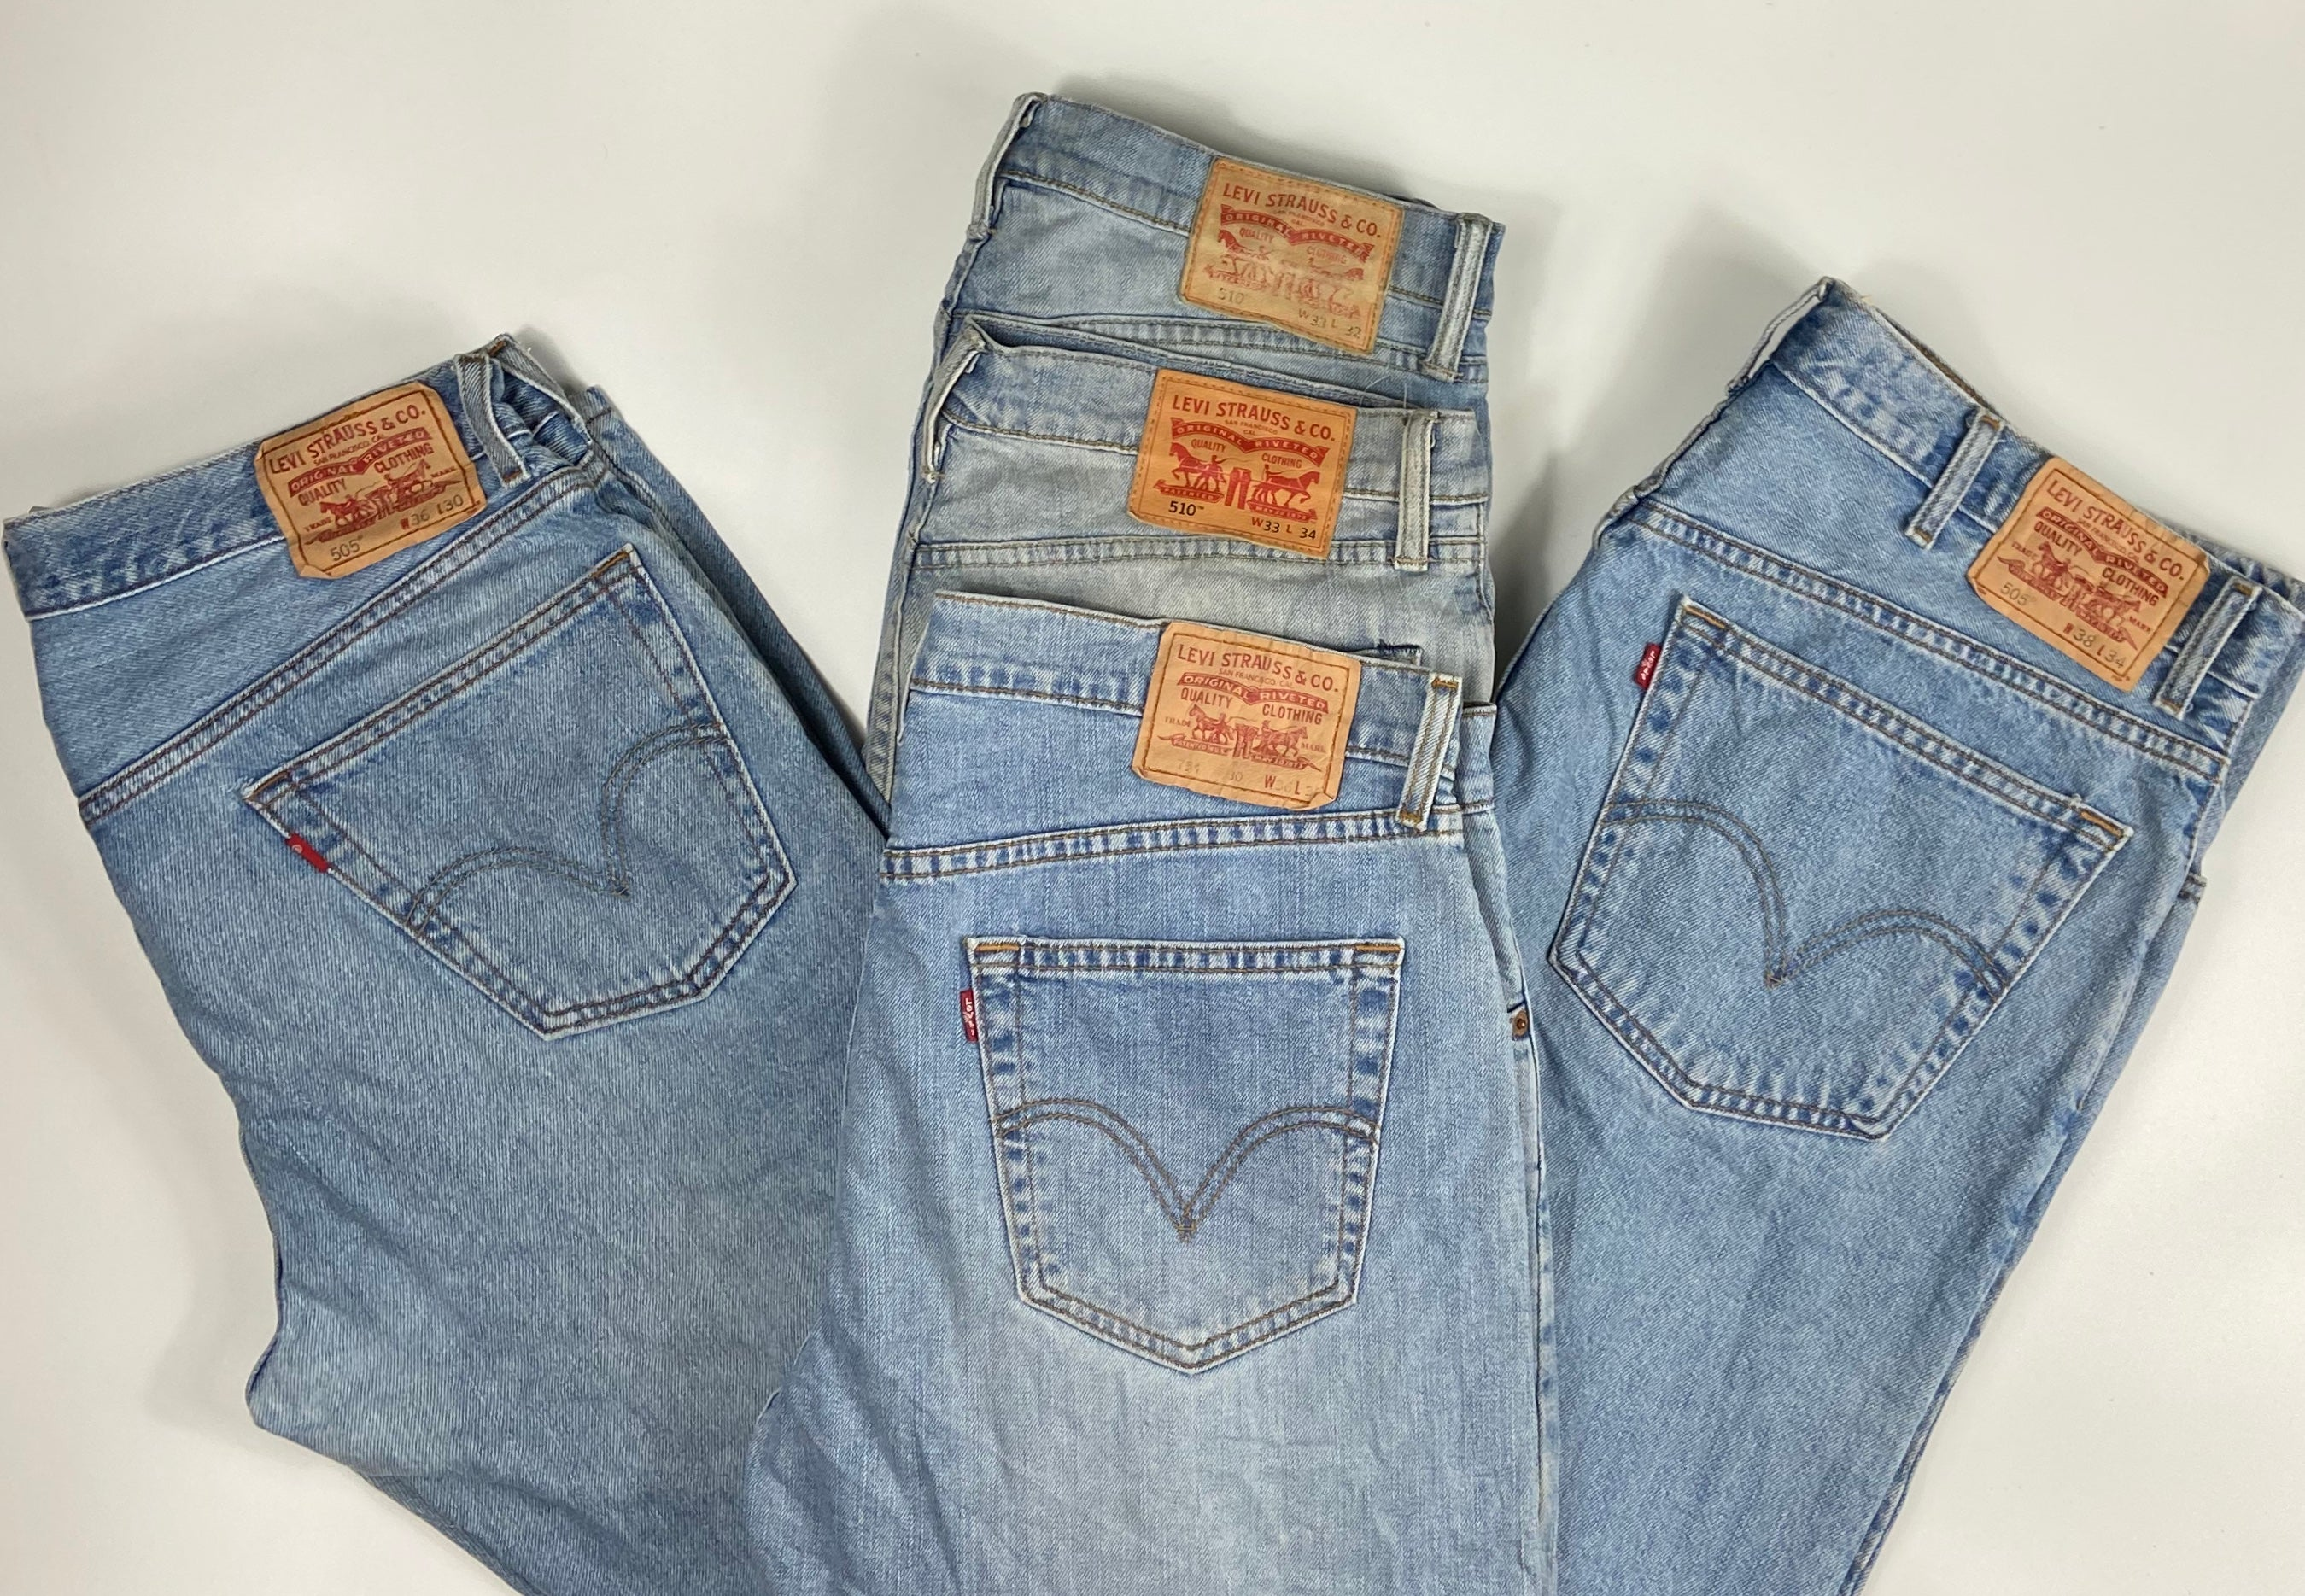 Vintage Original Levi's 501 Button Fly Jeans Waist 30 Length 32